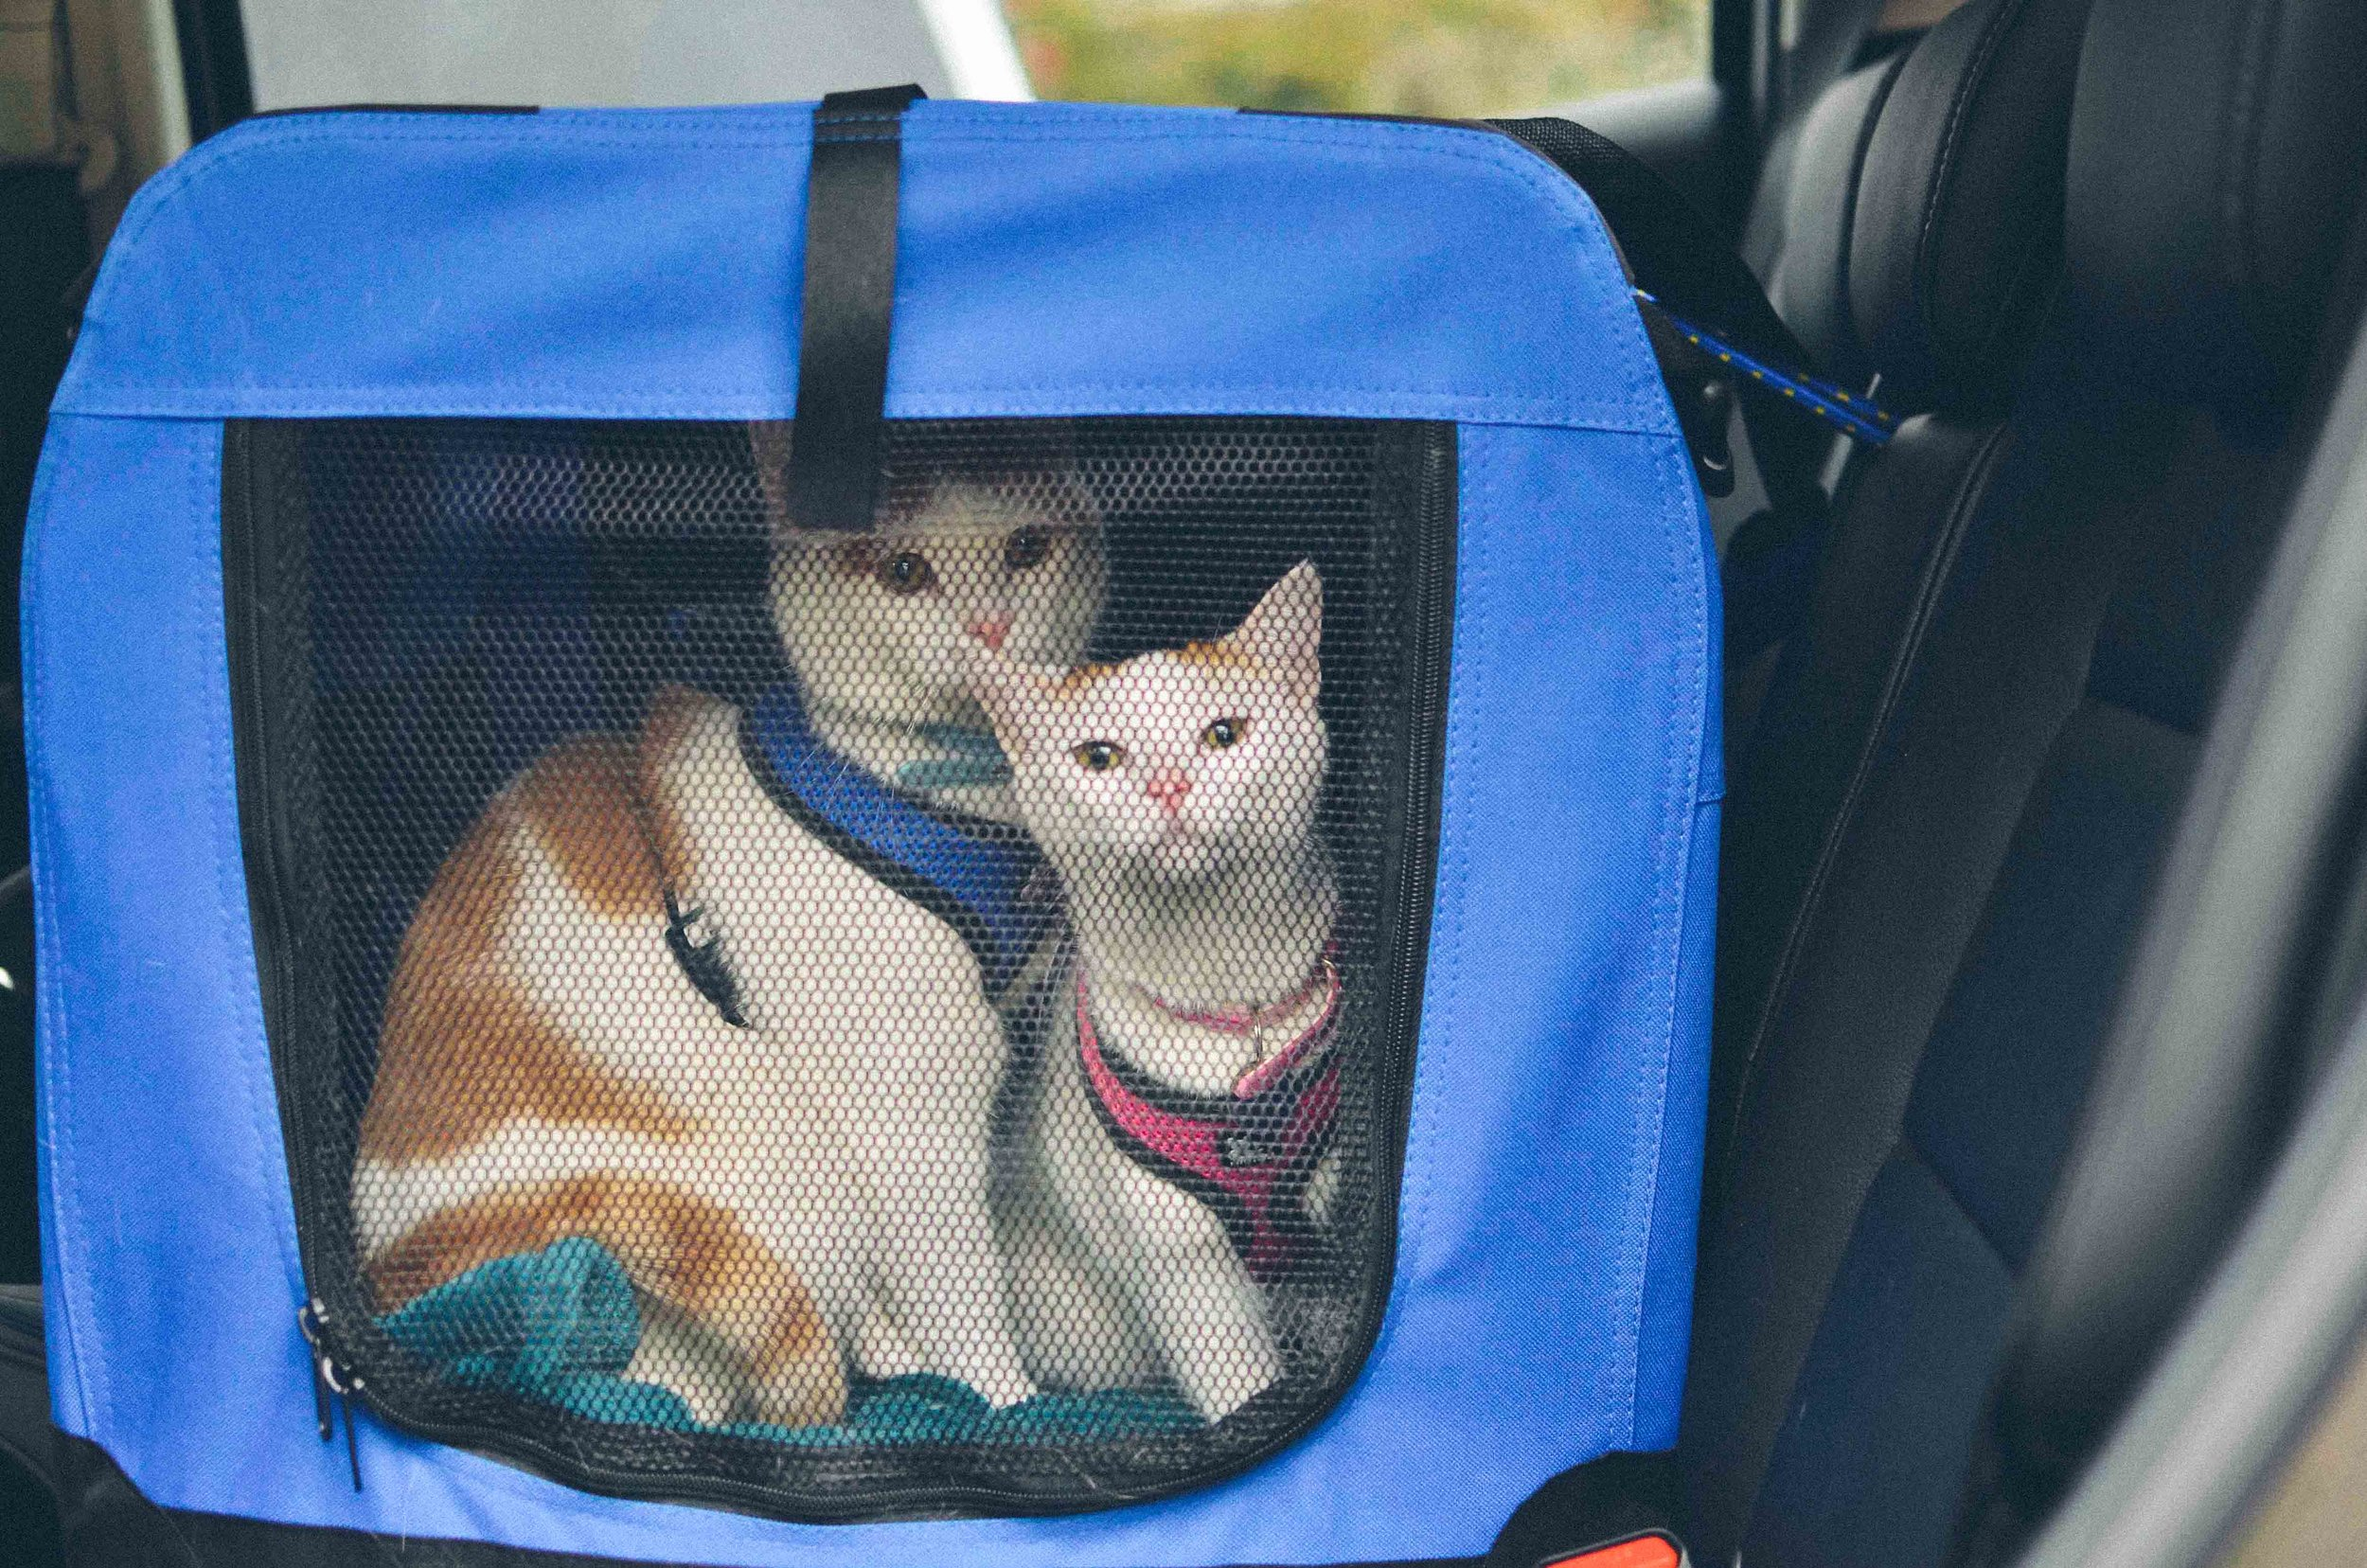 Lumos & Noxie in their new carrier in the car